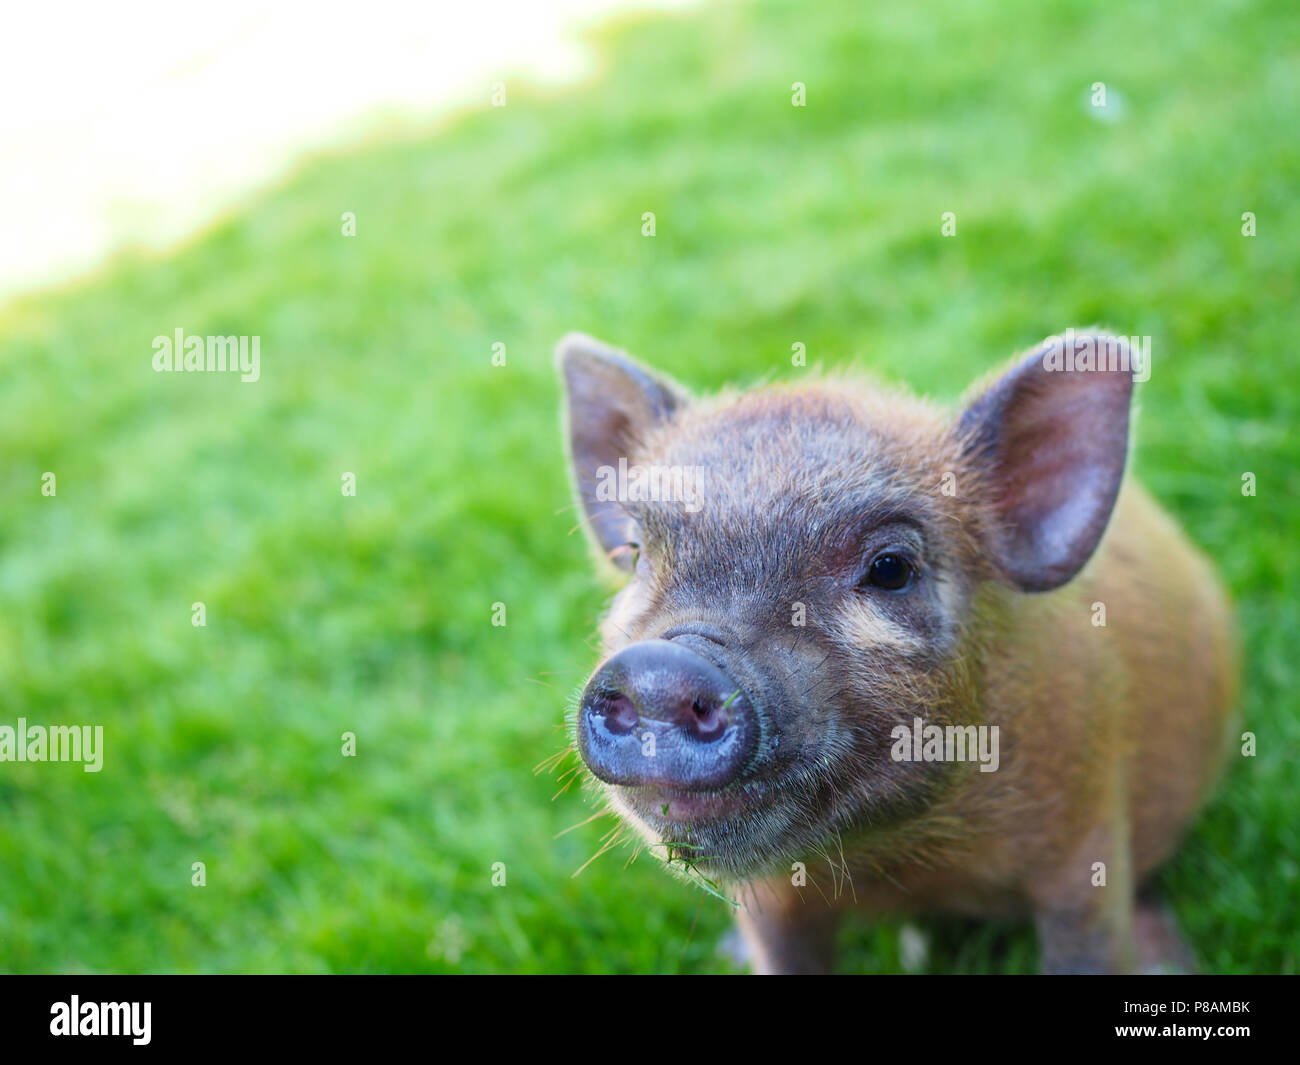 Micro Pig in a household setting - Stock Image